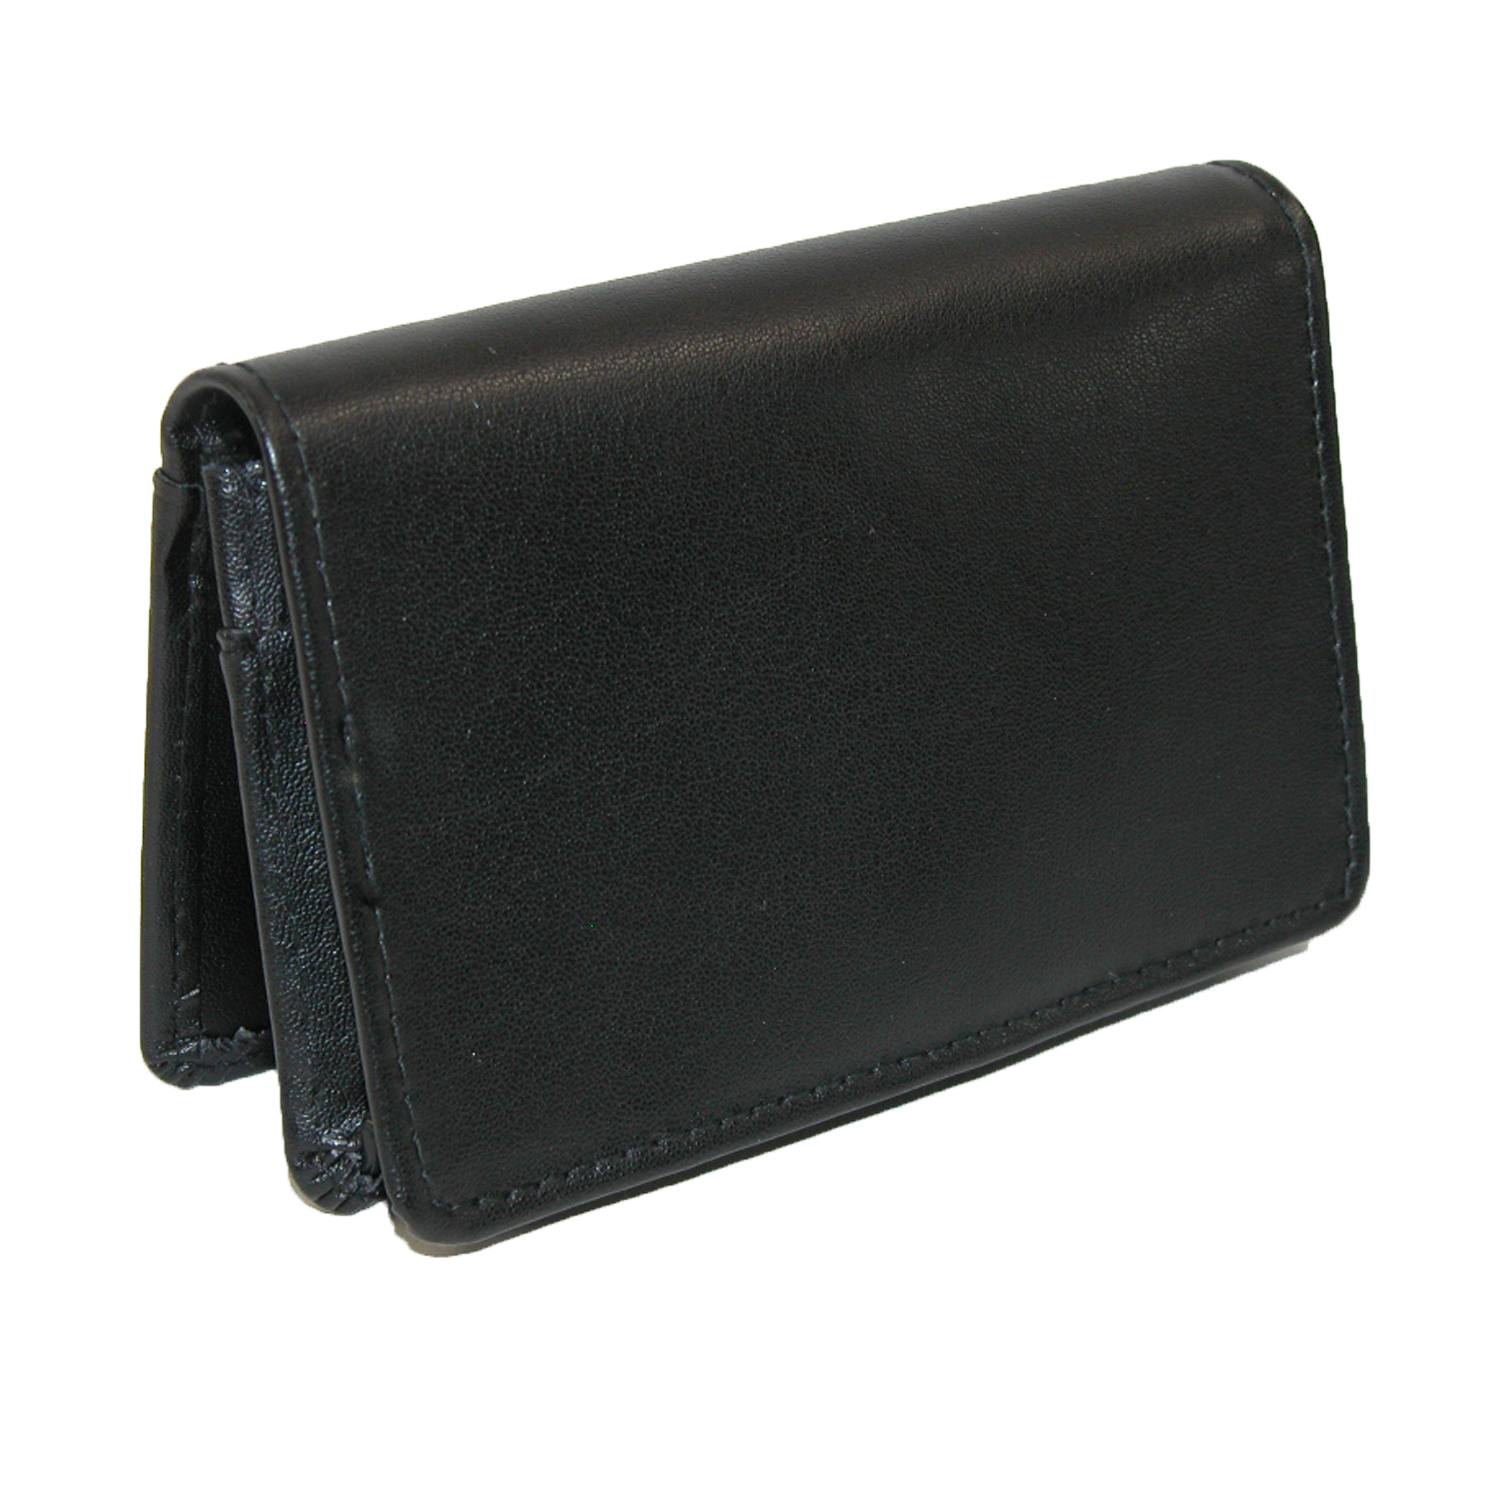 Buxton Leather Business Card Holder with ID Window - Walmart.com